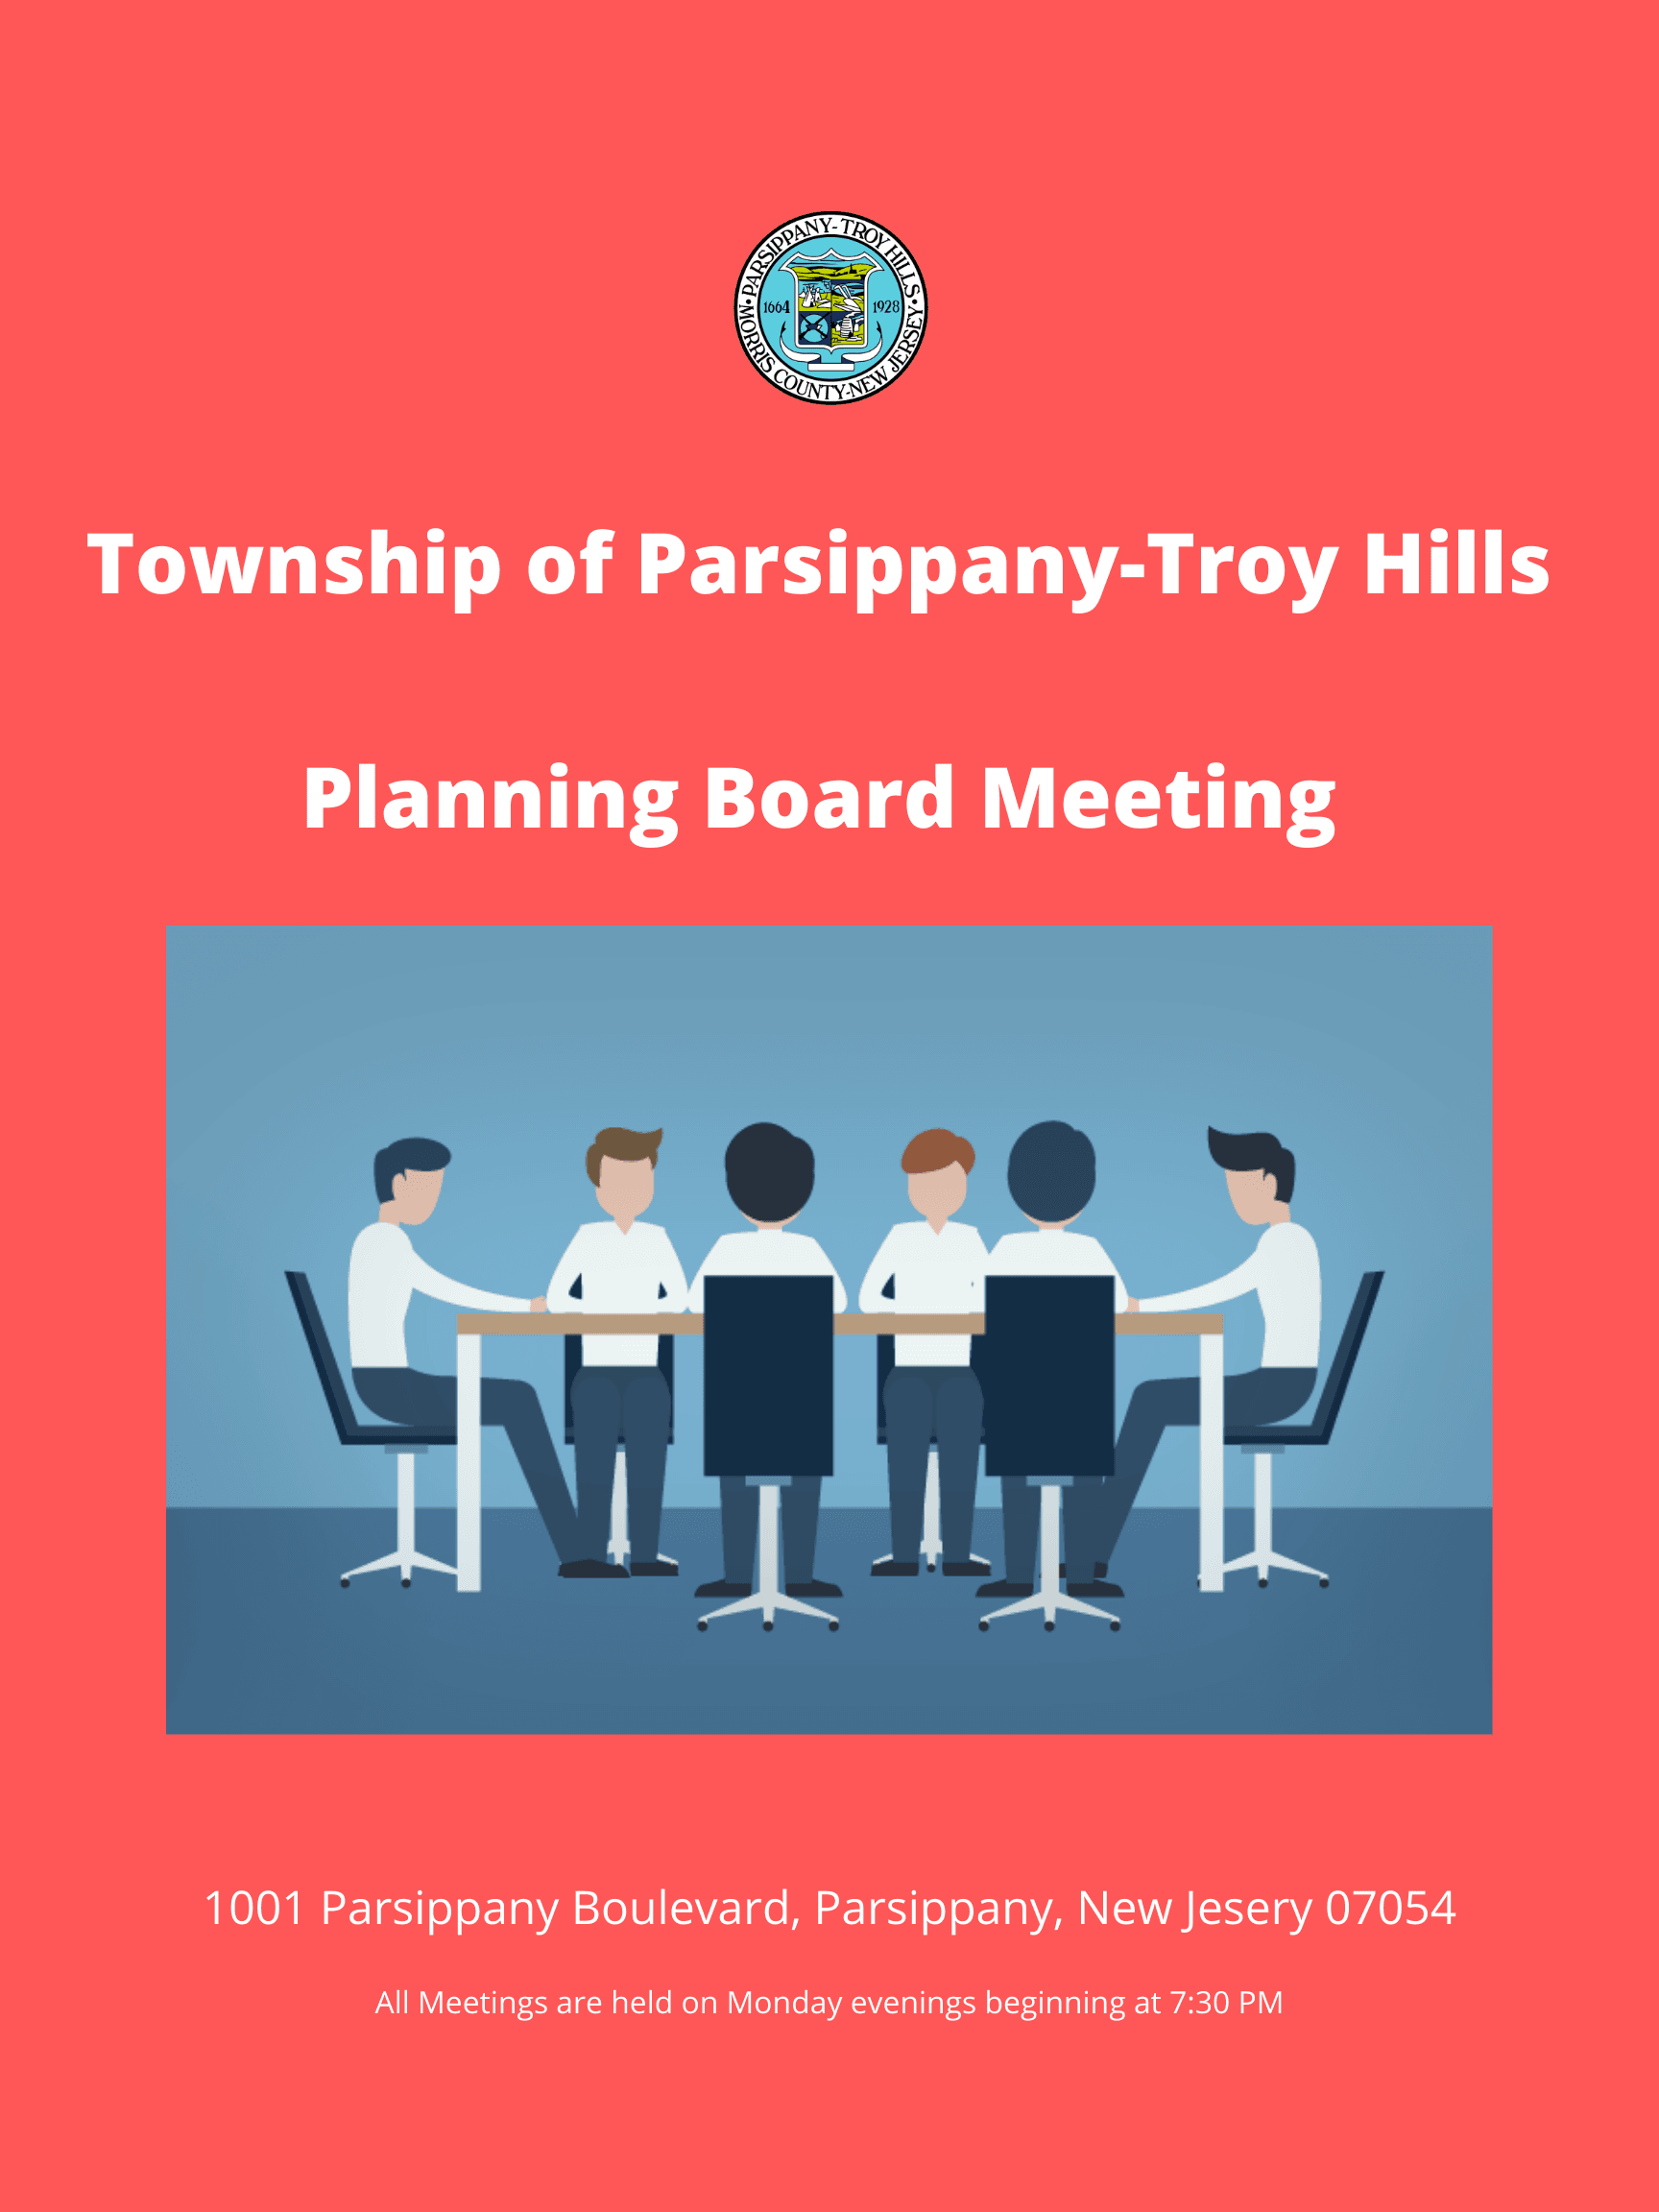 Township of Parsippany-Troy Hills Planning Board Meeting